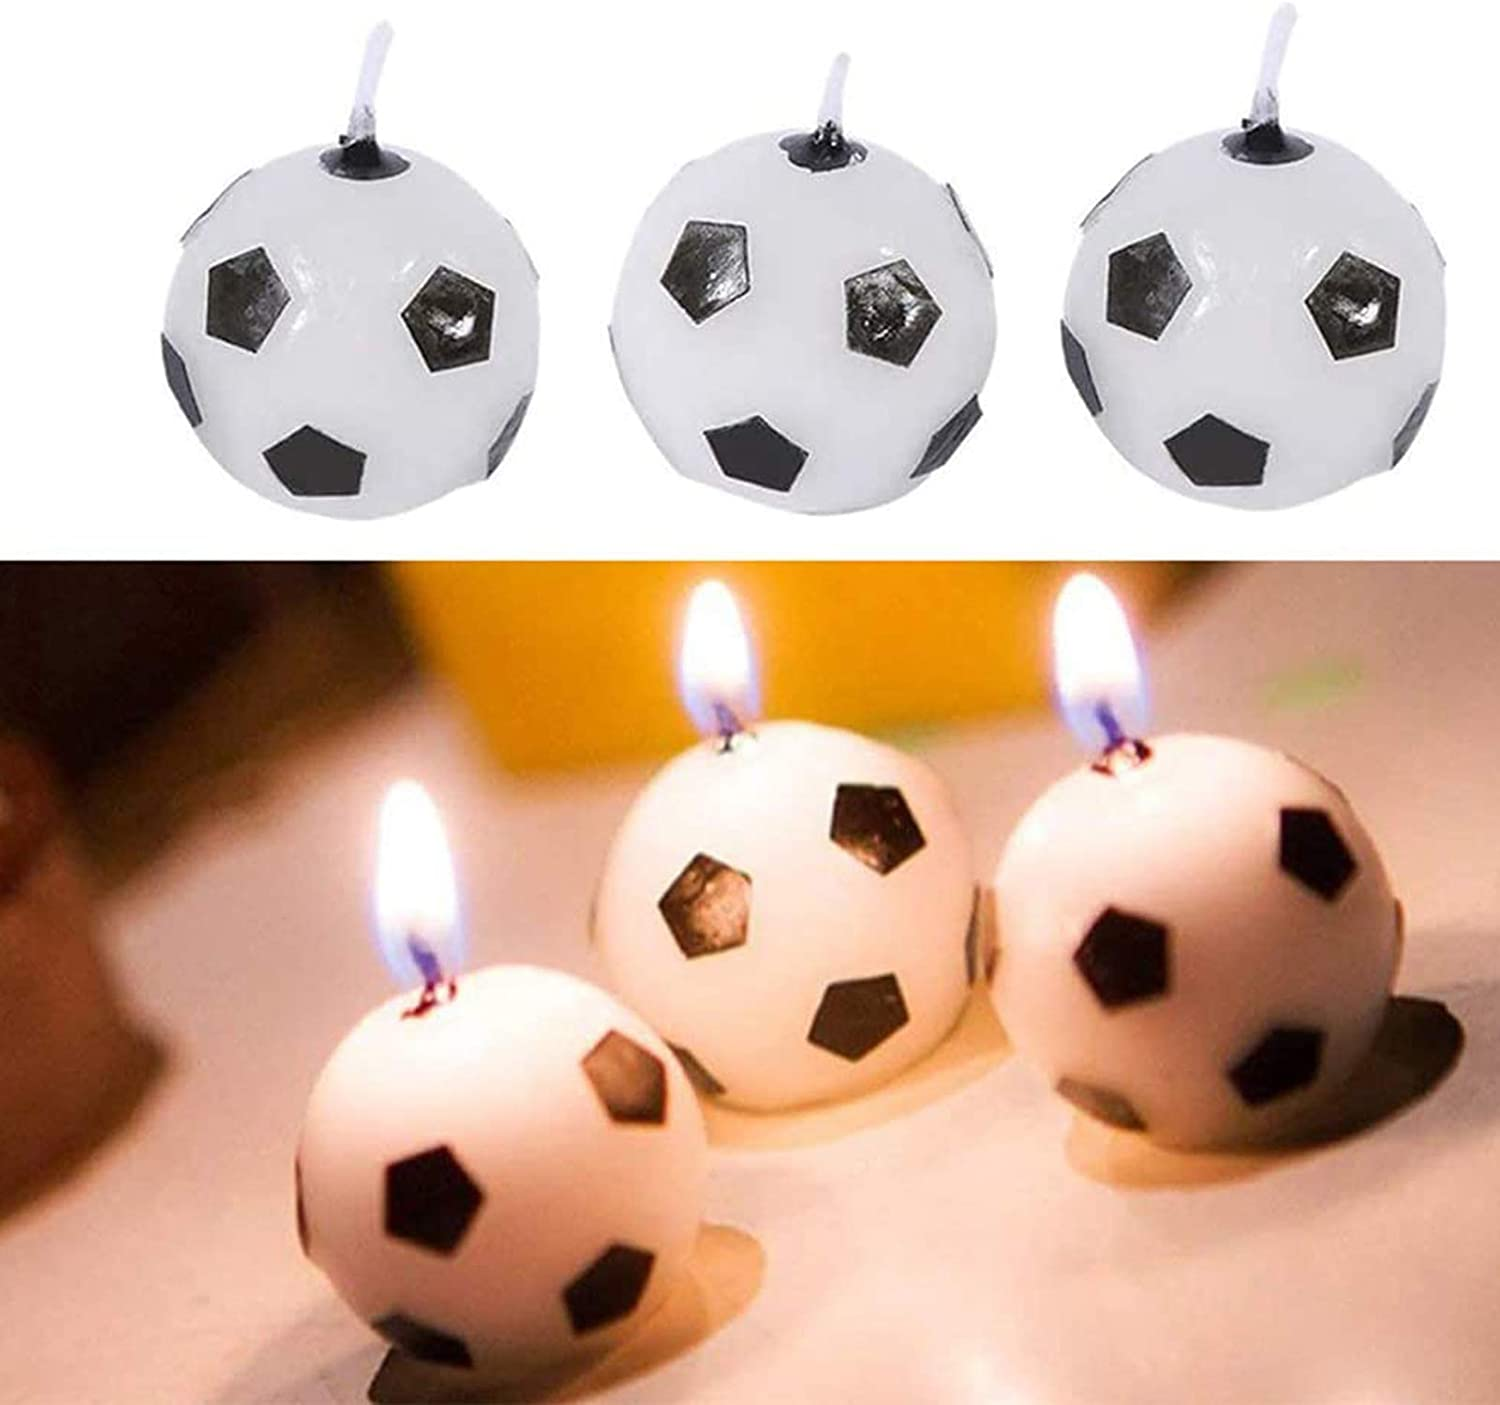 6Pcs Football Cake Candles Decoration Soccer Ball Birthday Party Supplies for Kids Toy Gifts Home Decoration